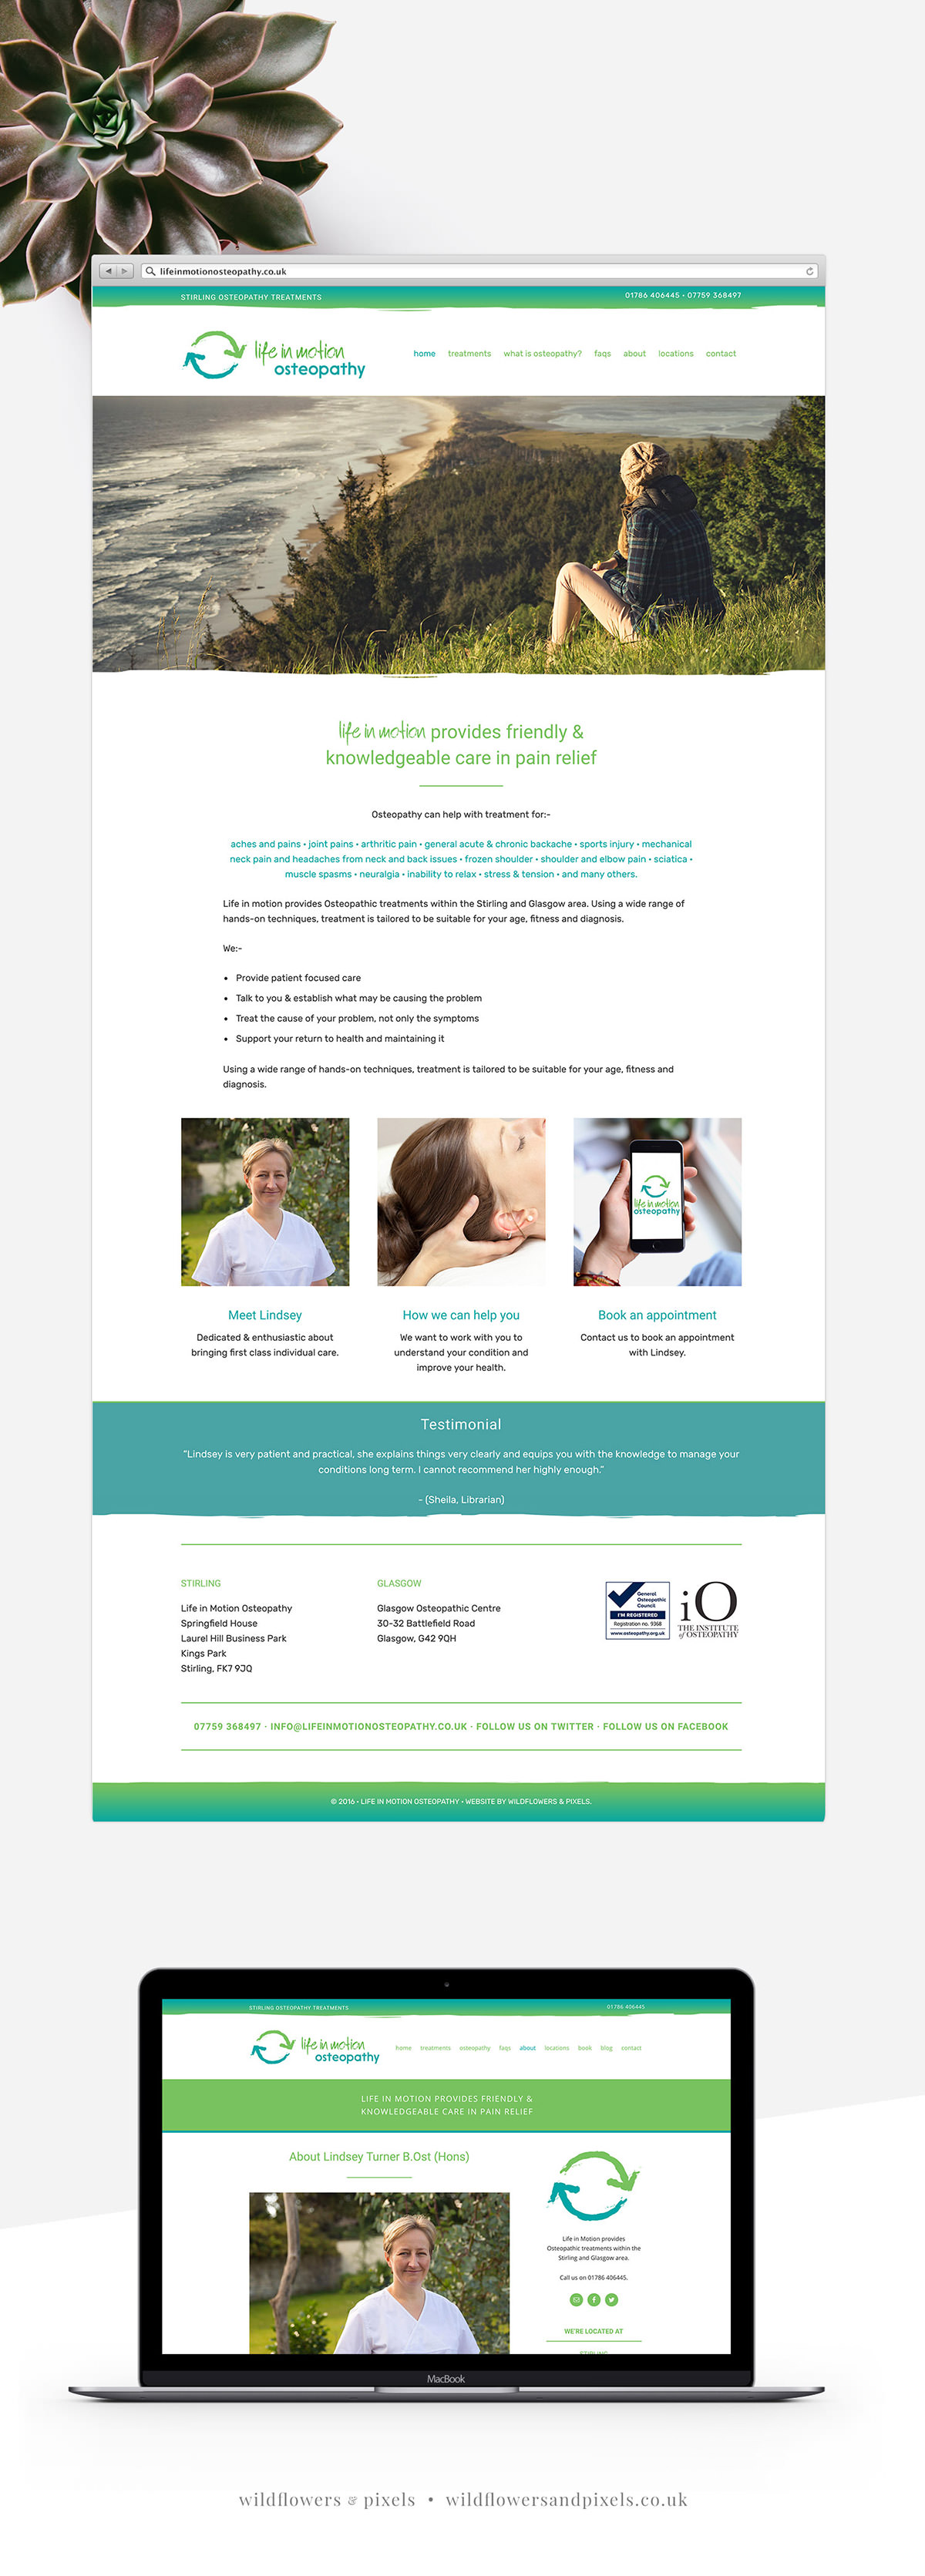 Website & logo design project for Life In Motion Osteopathy. Providing website design and branding to small businesses.